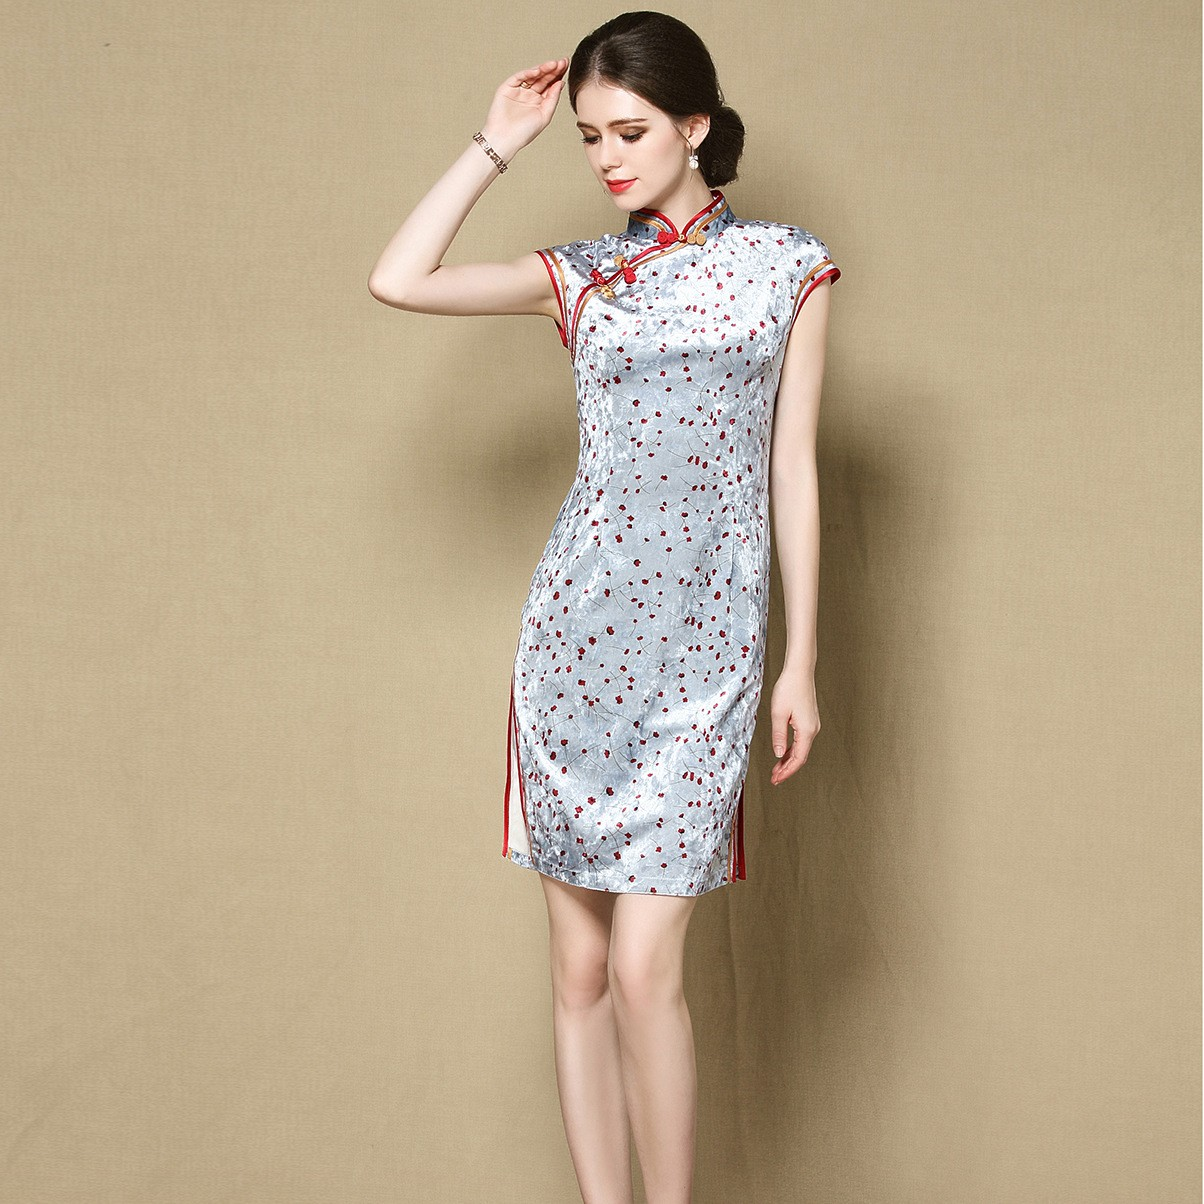 Cute Small Flowers Velvet Qipao Cheongsam Dress - Gray